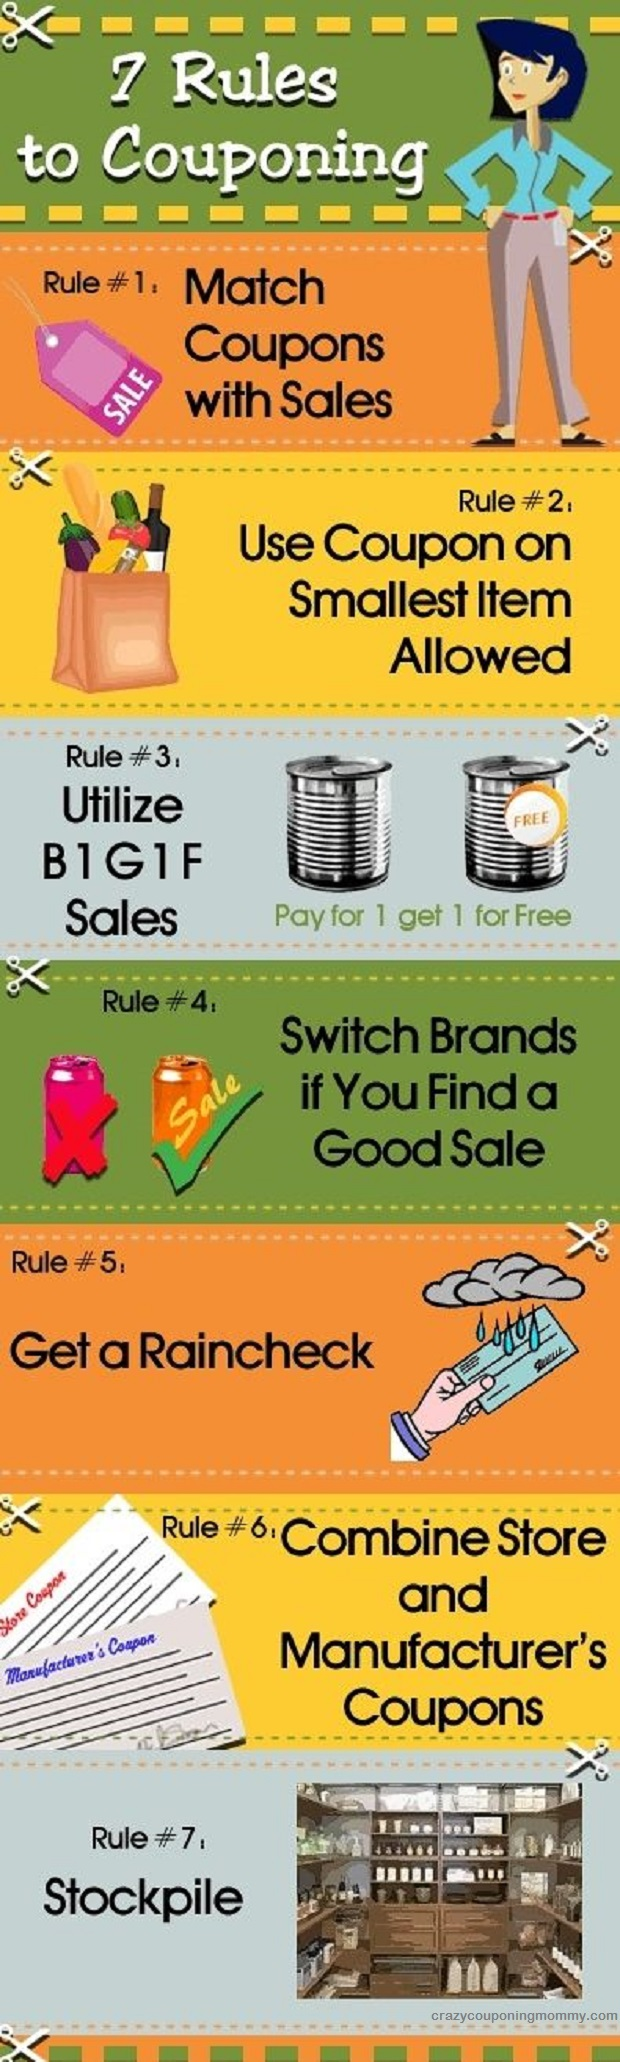 Buying with coupons